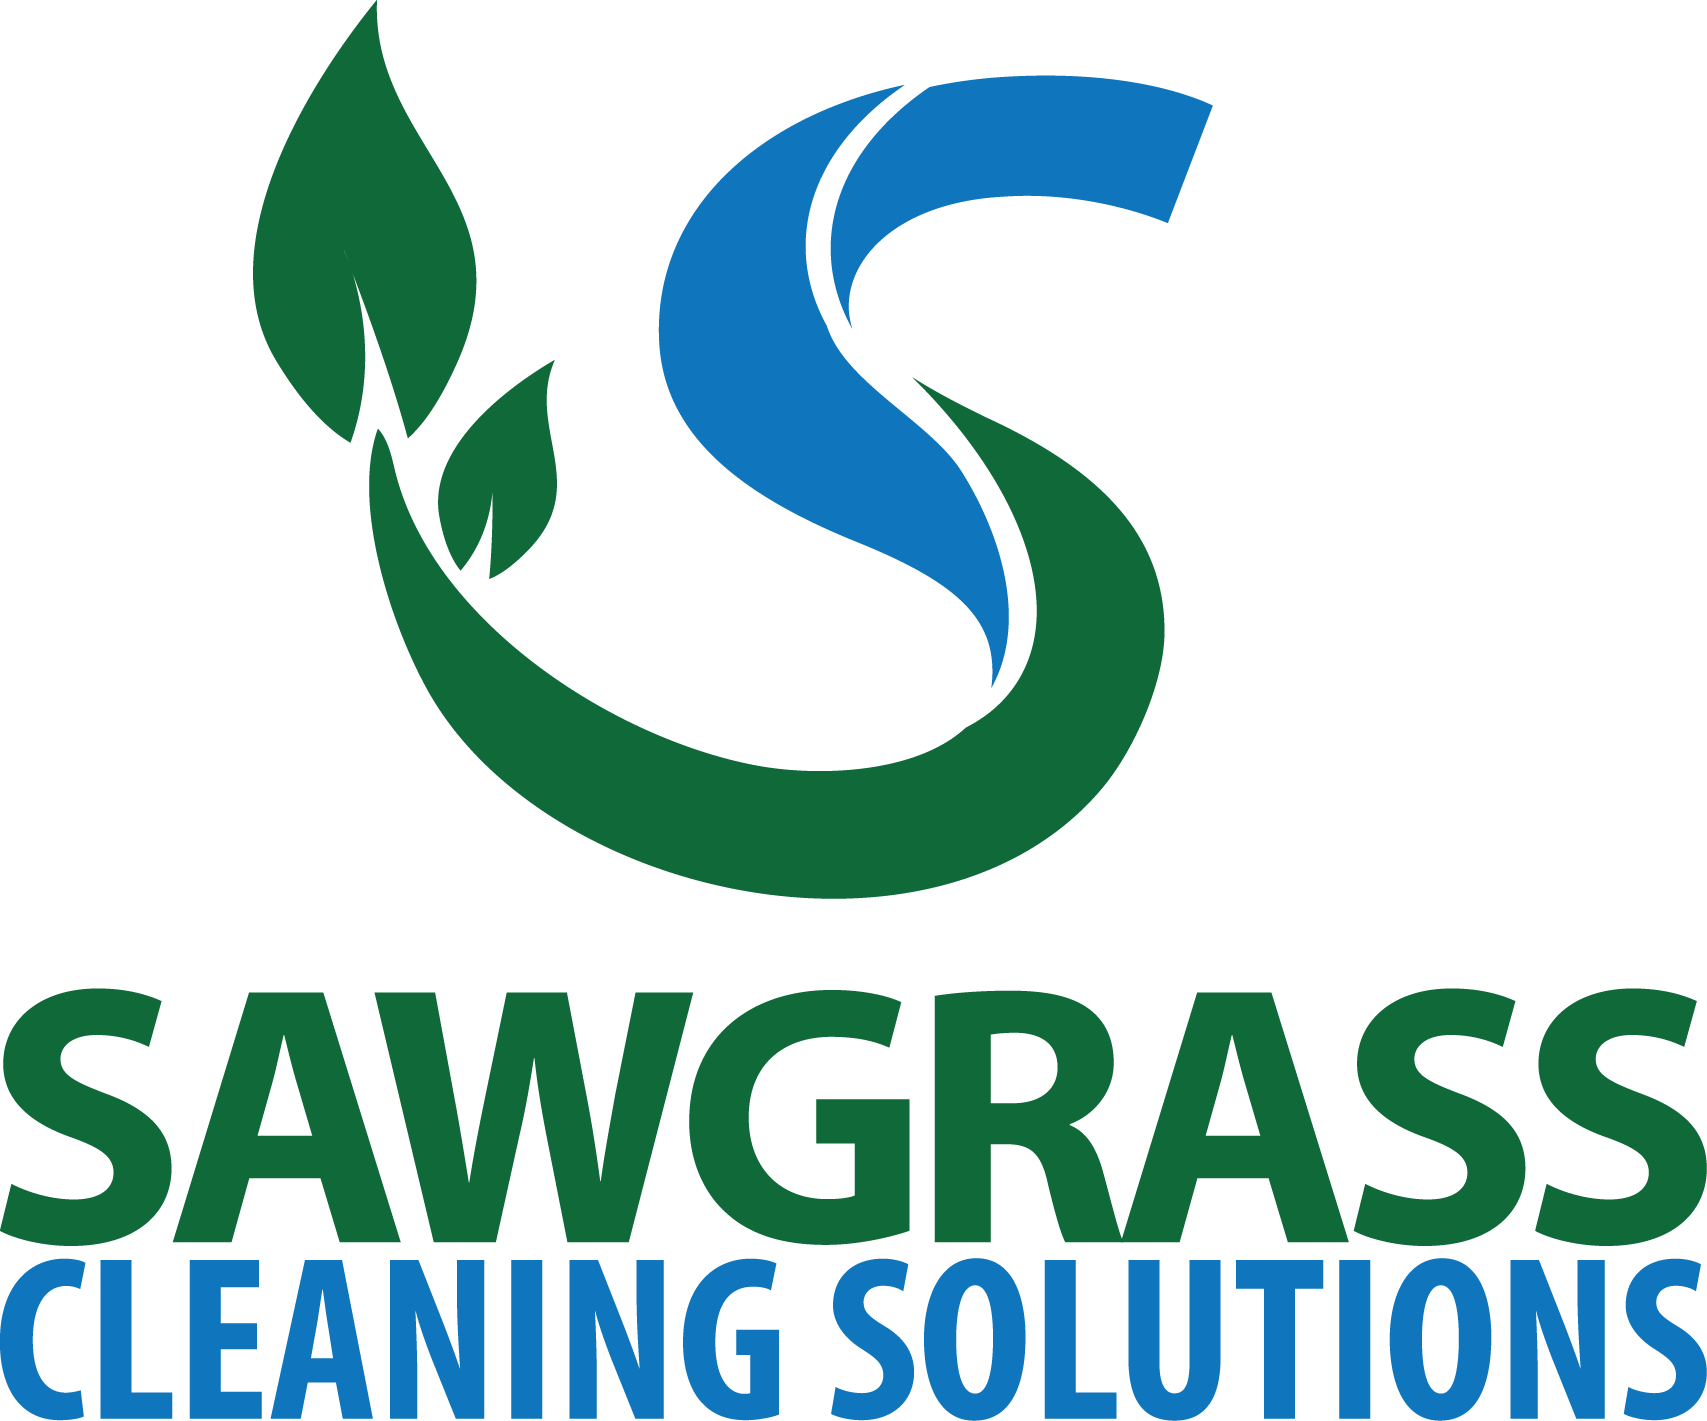 Sawgrass Cleaning Solutions